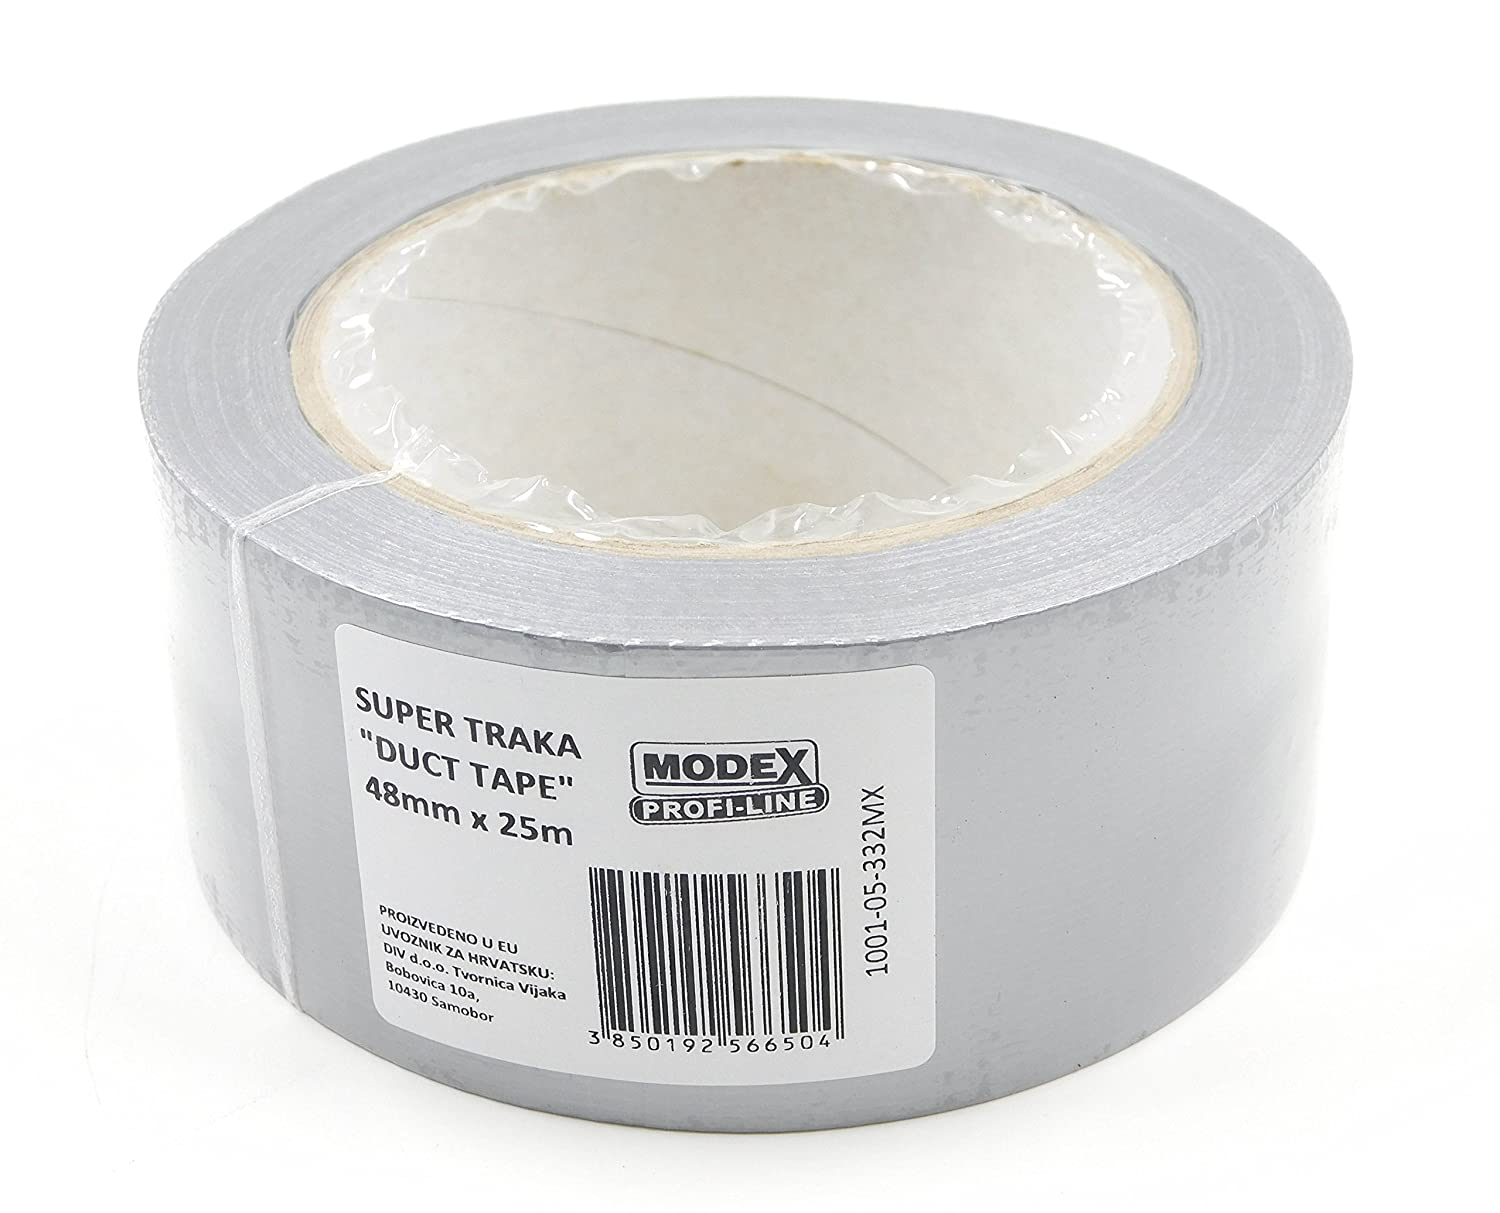 Modex Profi-Line Duct Tape 48 mm x 25 m